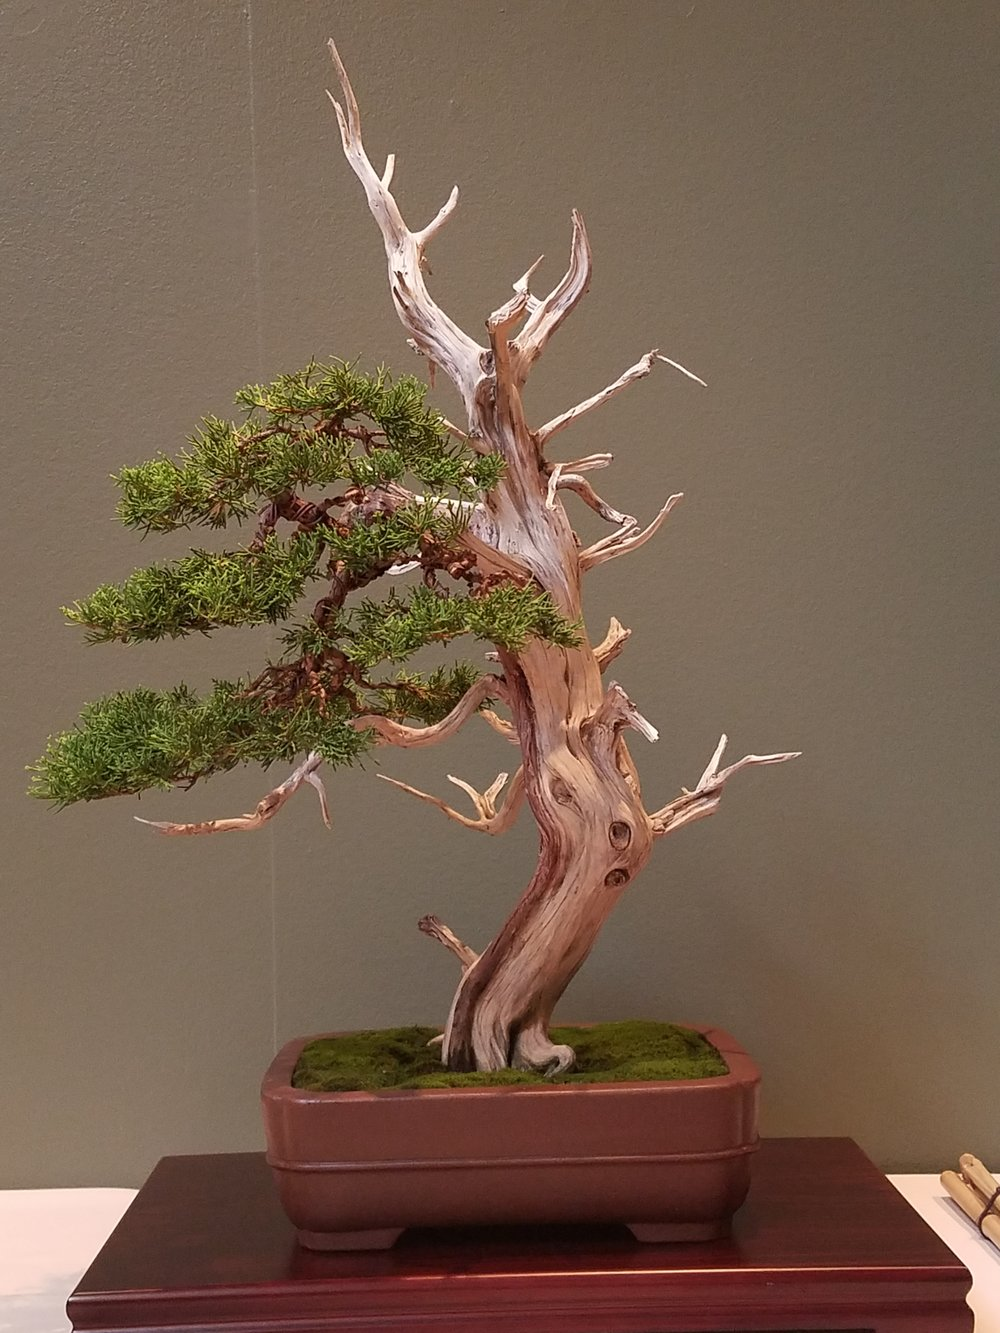 2017 Mid-America Bonsai Exhibition - Itoigawa Juniper - Informal Upright